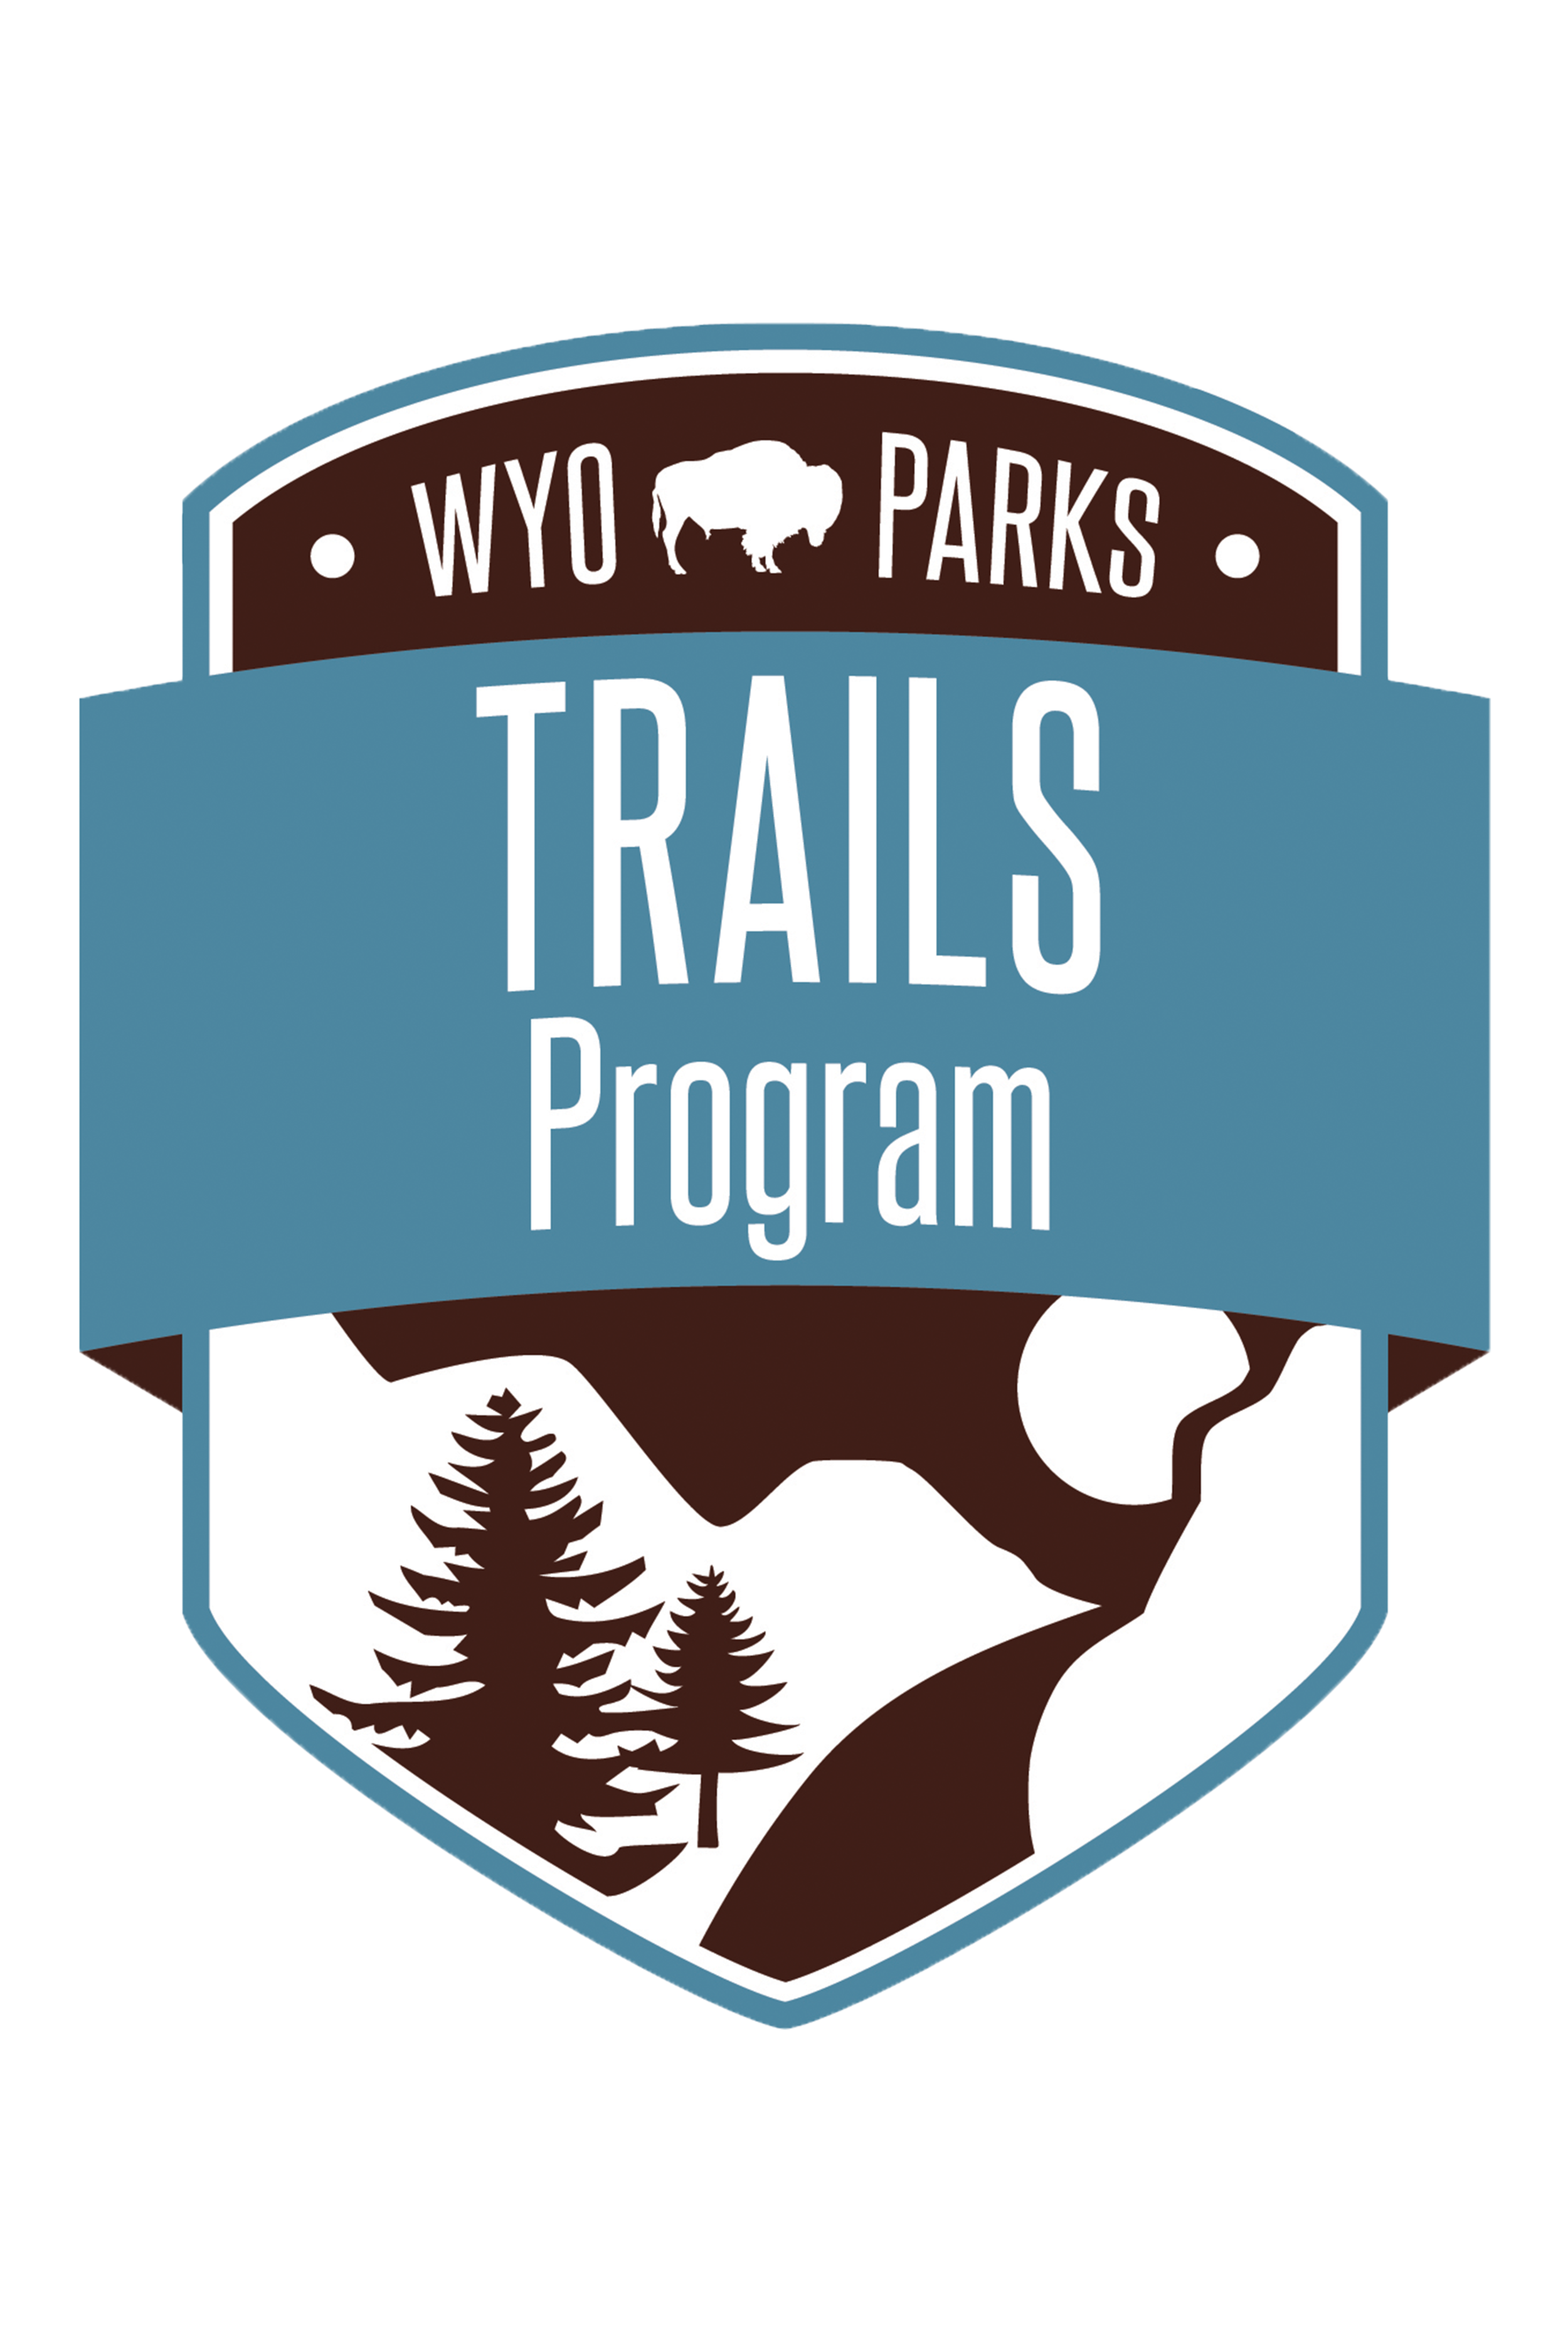 Wyoming State Trails - Wyoming State Trails has partnered with the avalanche center since 2001 to obtain over $500,00 in federal grant funding through the Recreational Trails Program. This funding supports avalanche hazard forecasting and avalanche education for winter trail users in Wyoming.